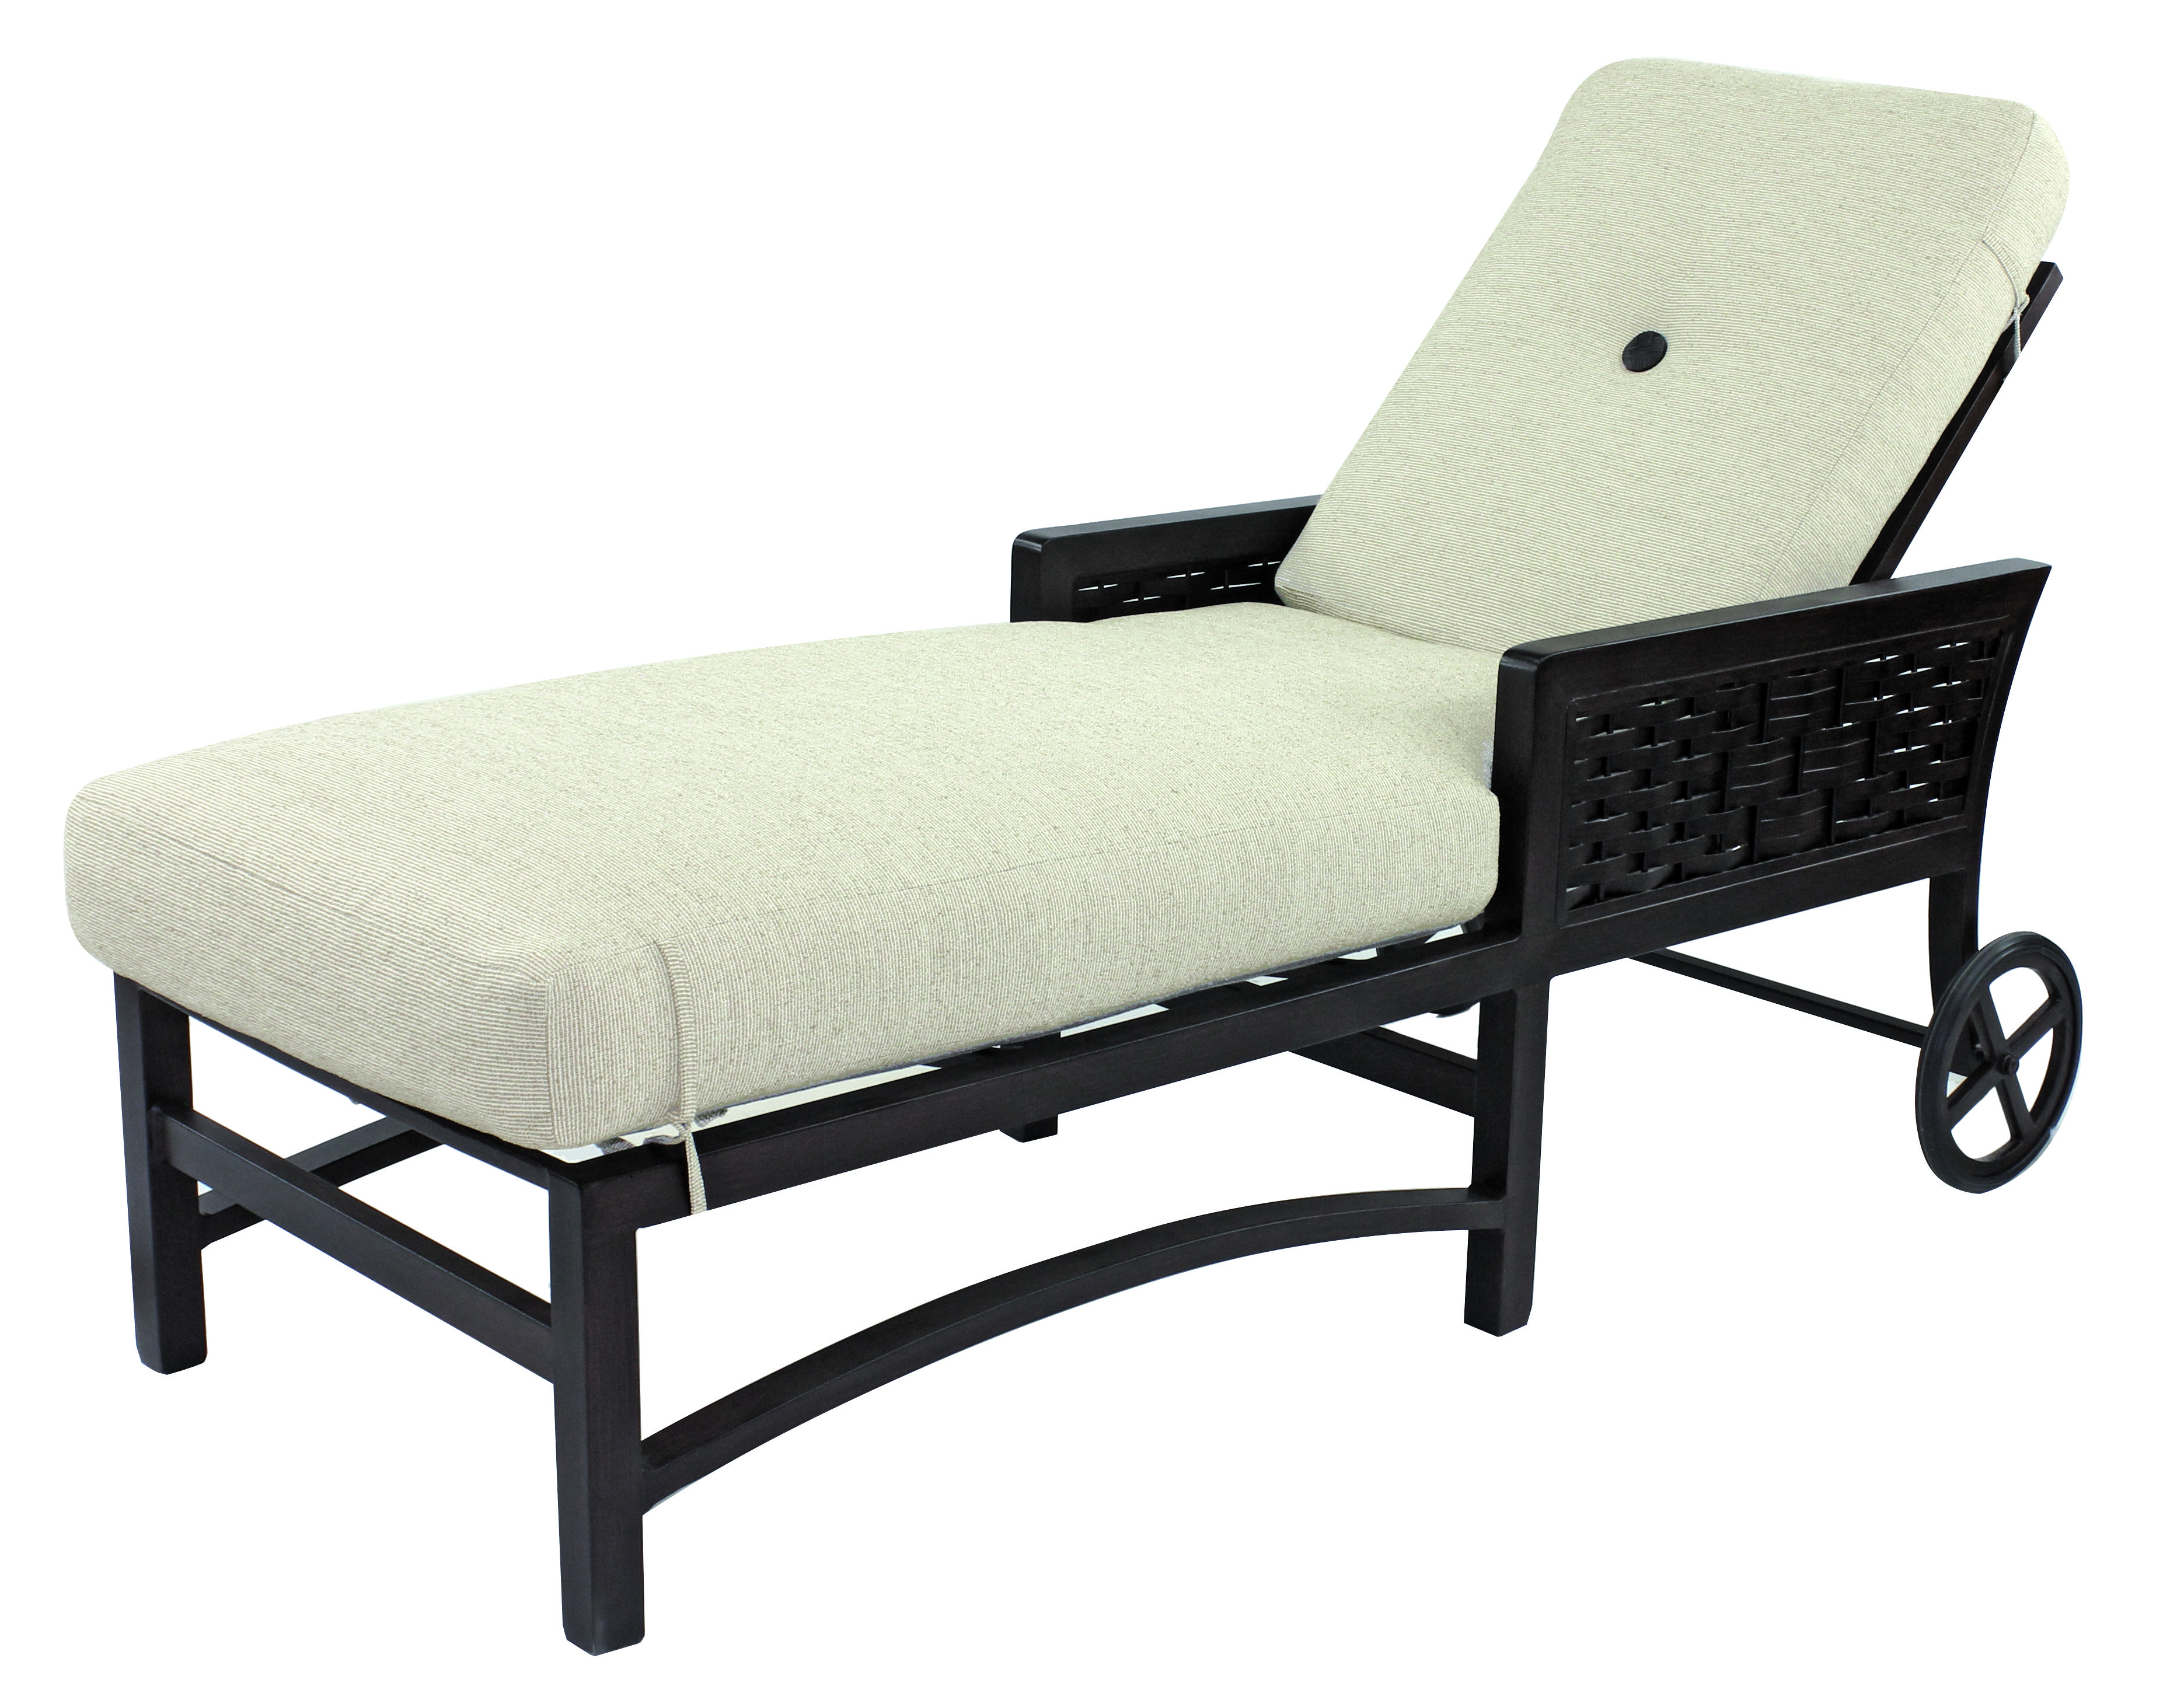 Spanish Bay Cushion Adjustable Chaise Lounge W/ Wheels Intended For Most Current Outdoor Cart Wheel Adjustable Chaise Lounge Chairs (View 15 of 25)